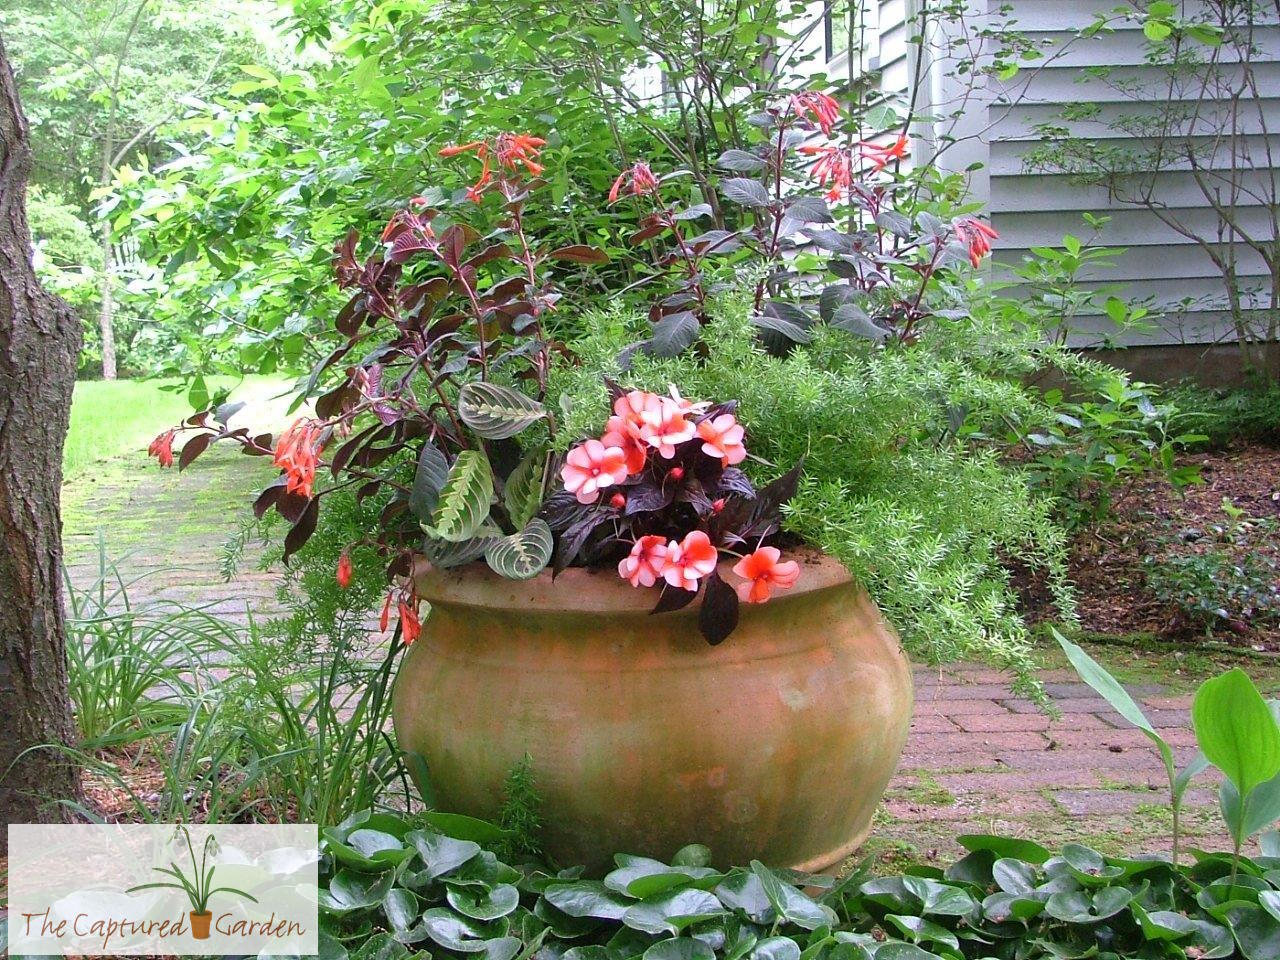 Container Garden Design 4 complement your yard ensure your container garden designs Houseplant Container Garden Design Services